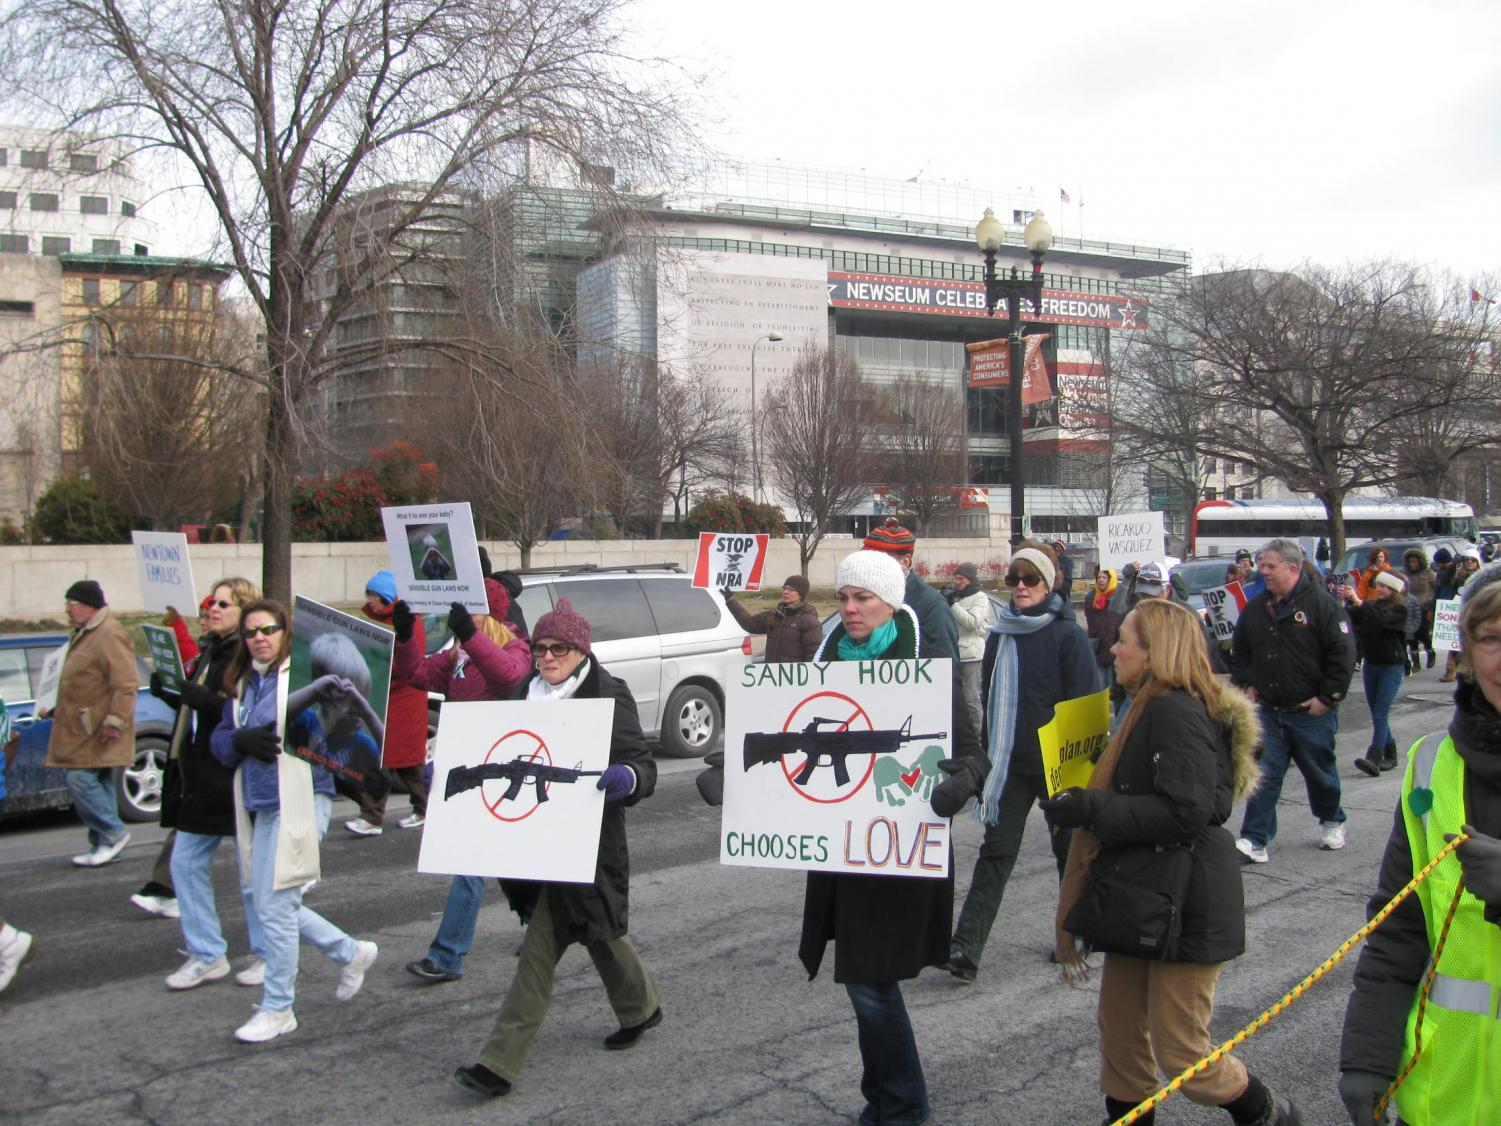 March on Washington for Gun Control, Jan. 23, 2013. Source: https://commons.wikimedia.org/wiki/File:March_on_Washington_for_Gun_Control_032.JPG